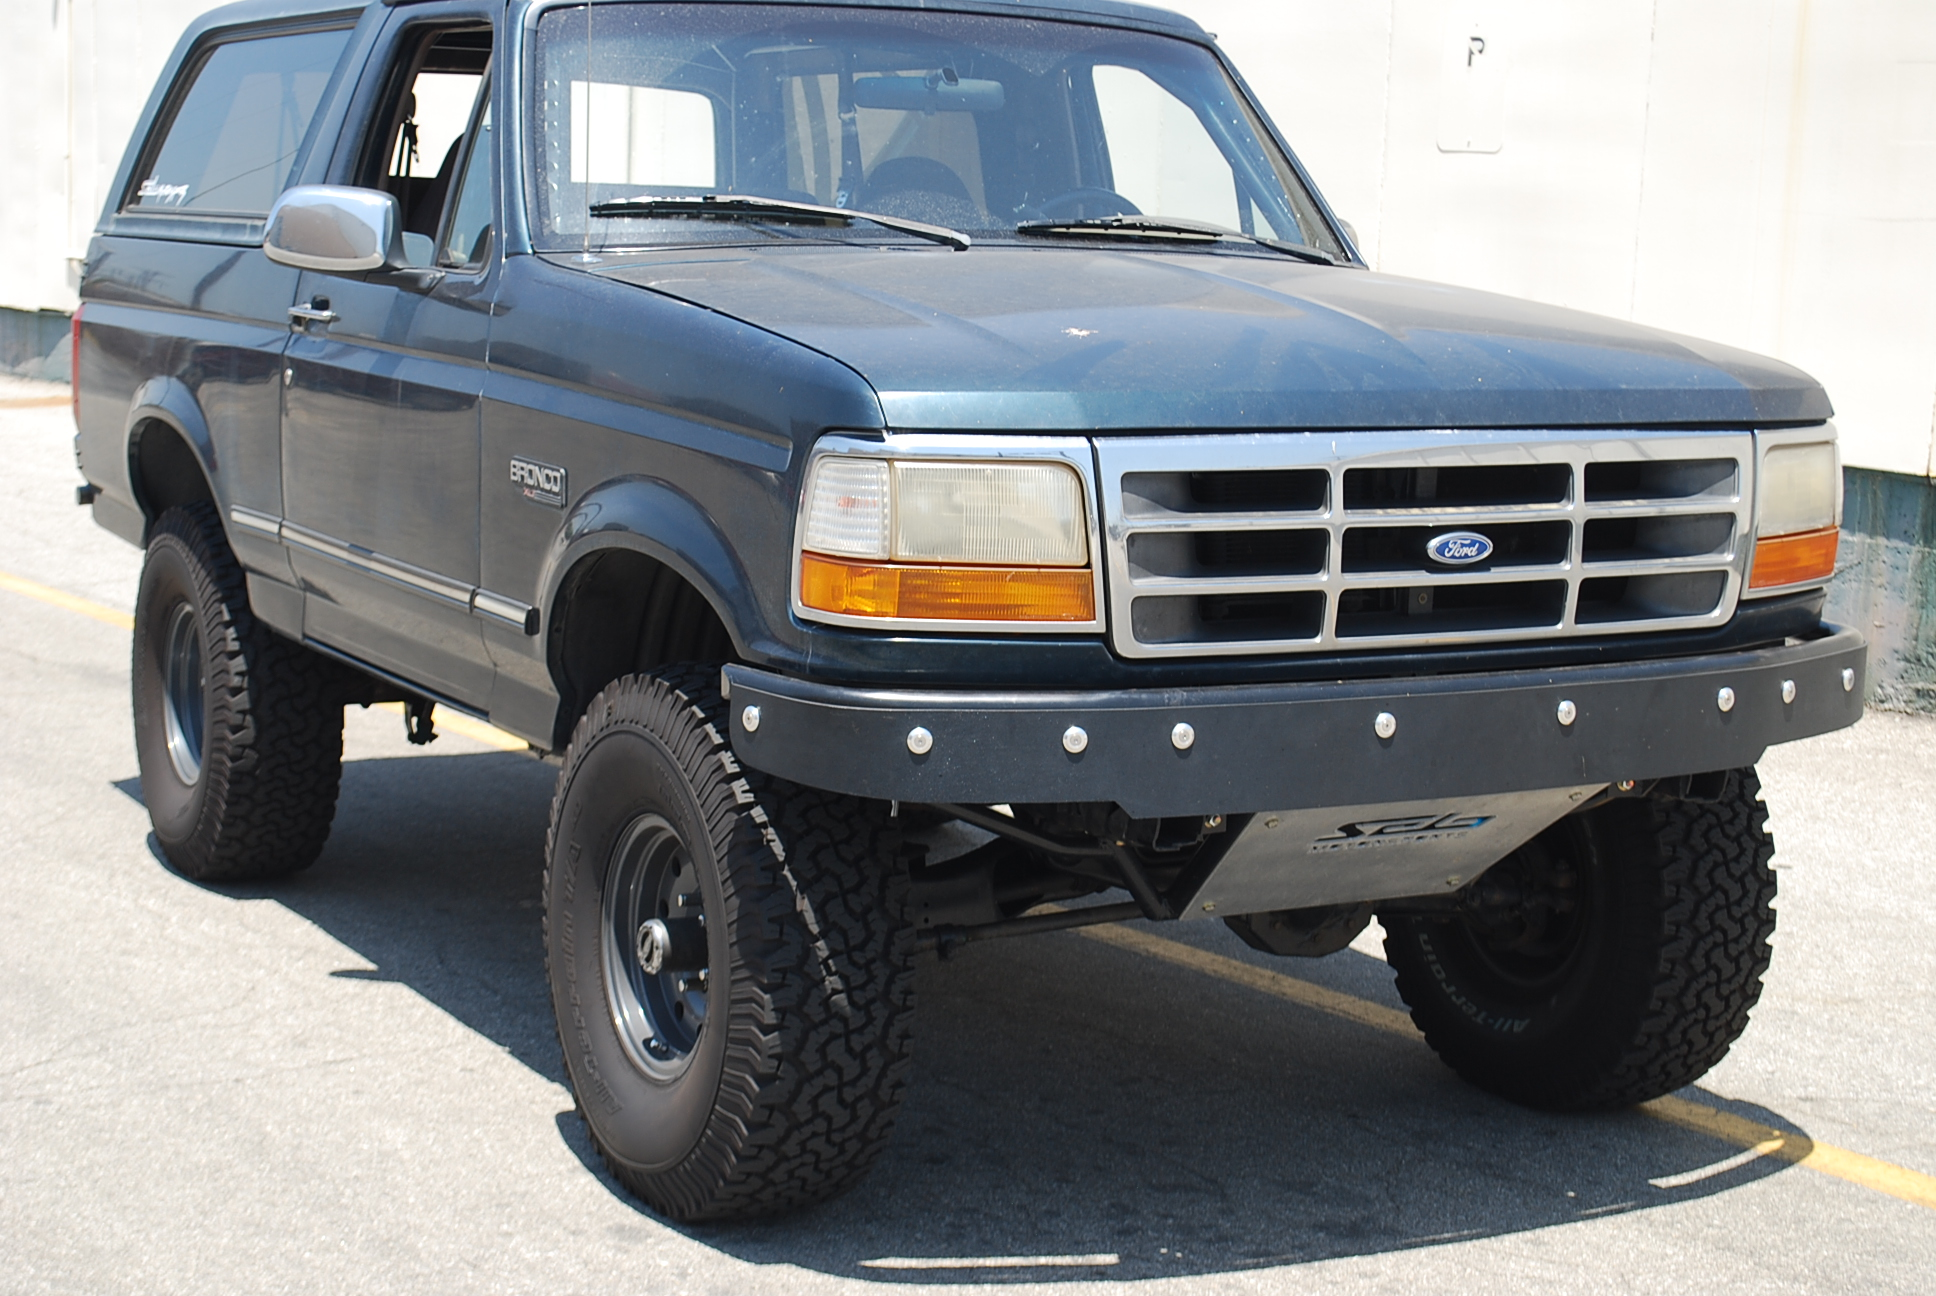 Ford Bronco F 150 Prerunner Front Bumper With Abs